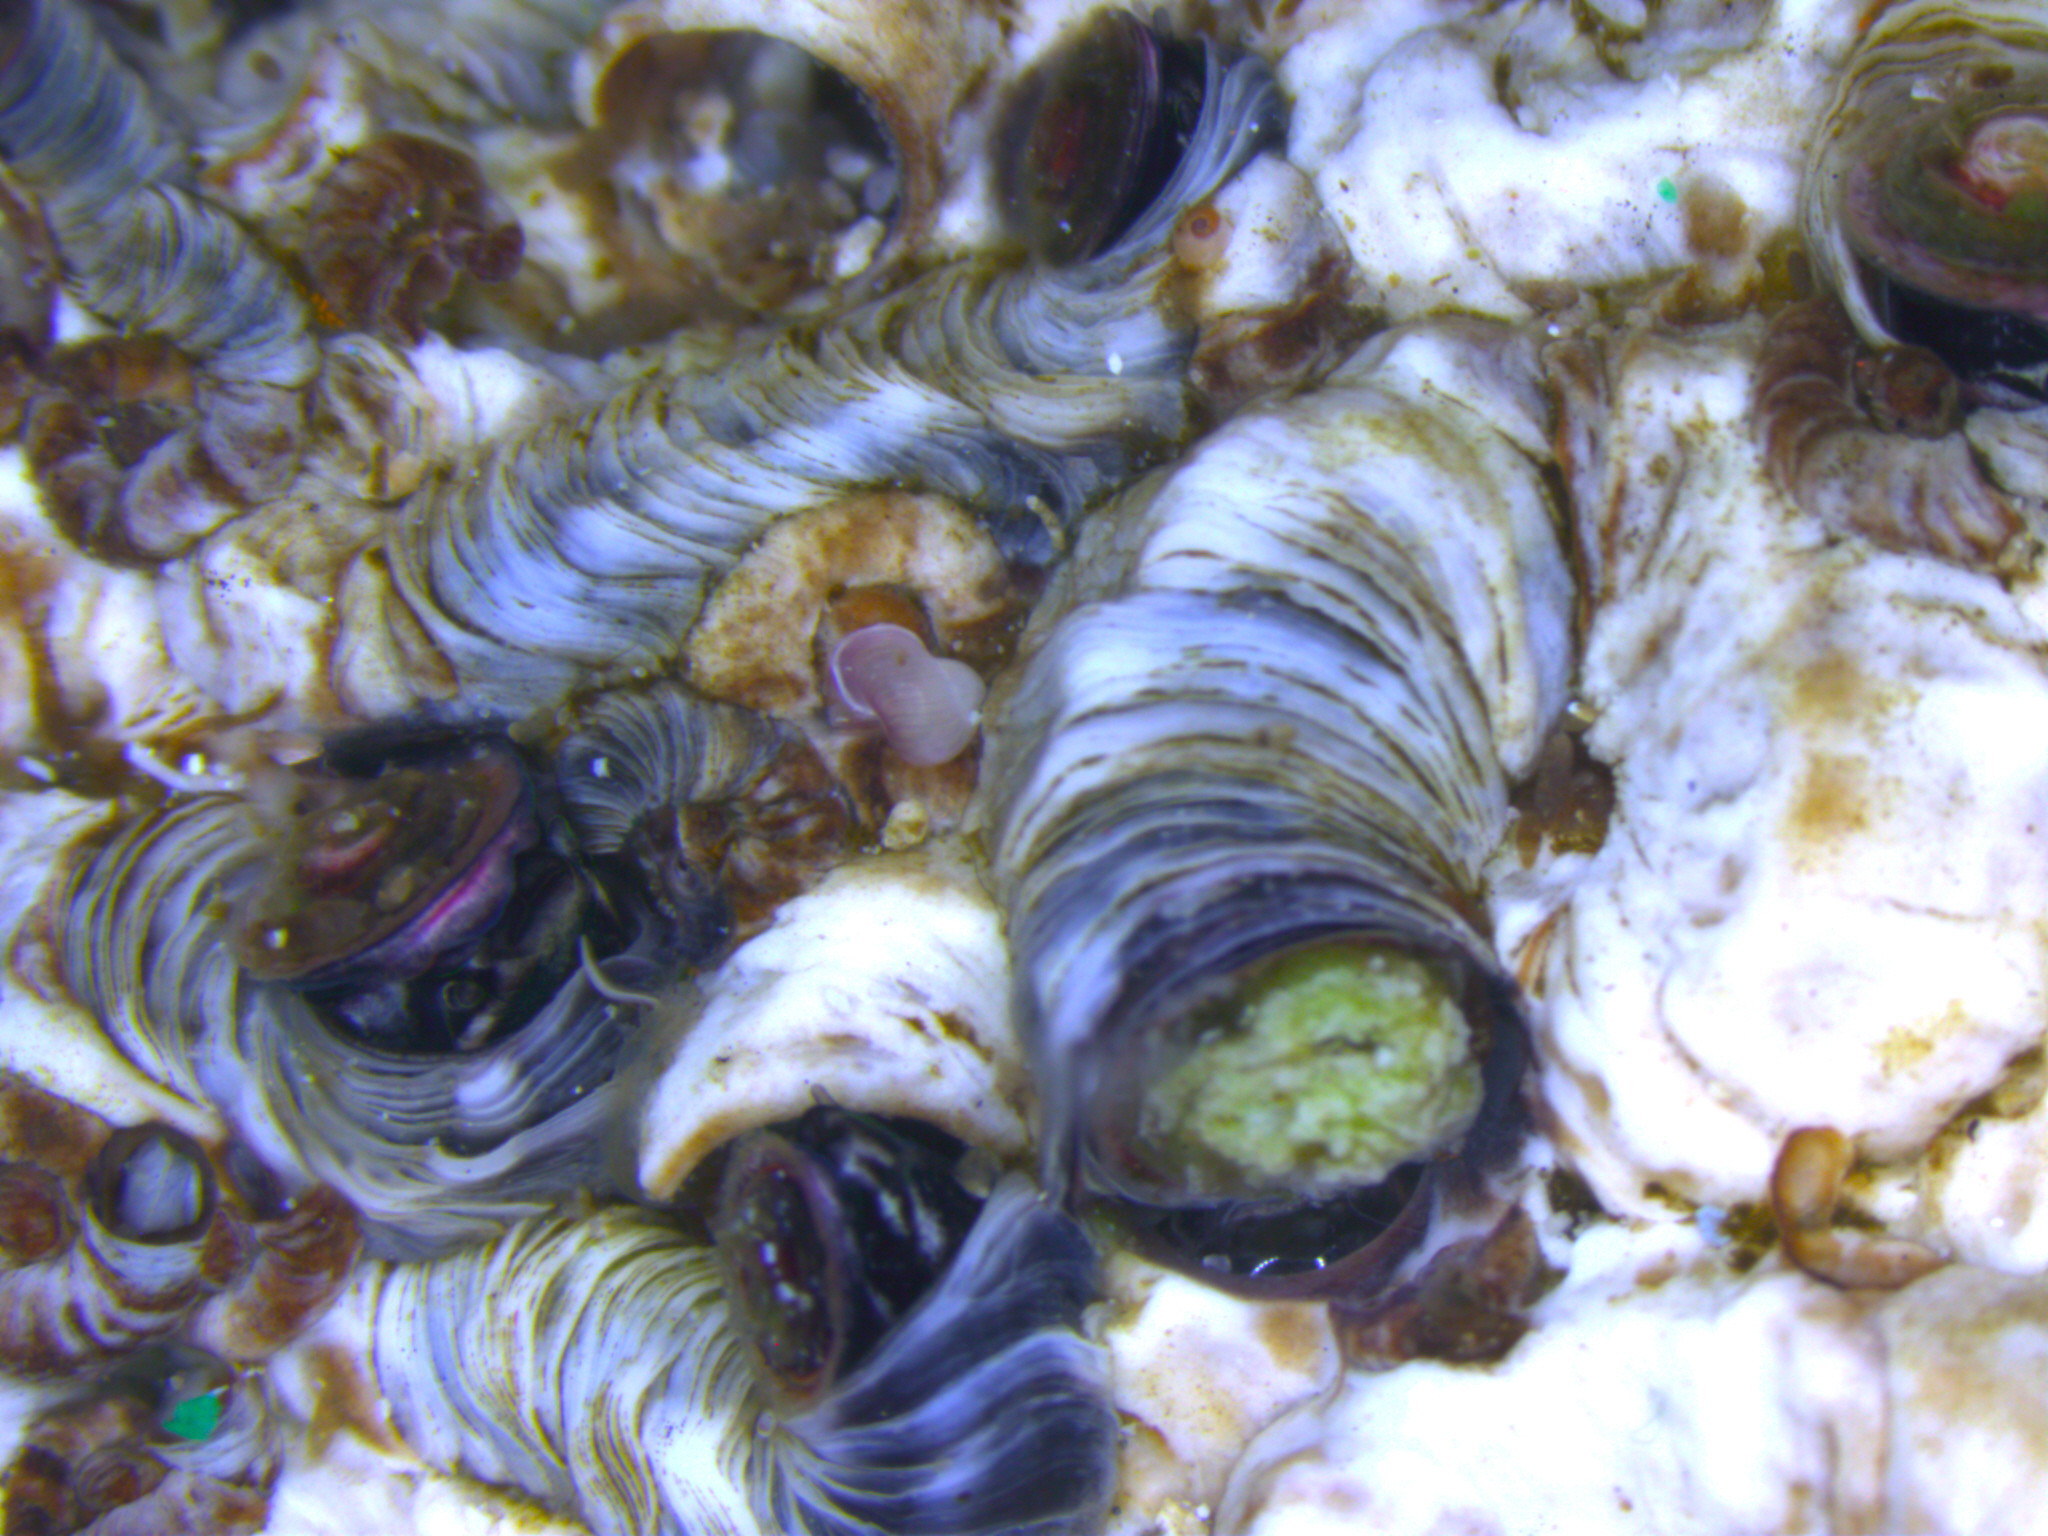 Dendropoma and its its associated calcareous algae Neogoniolithon brassica-florida. Photo from the Mediterranean Sea climate and environmental change blog